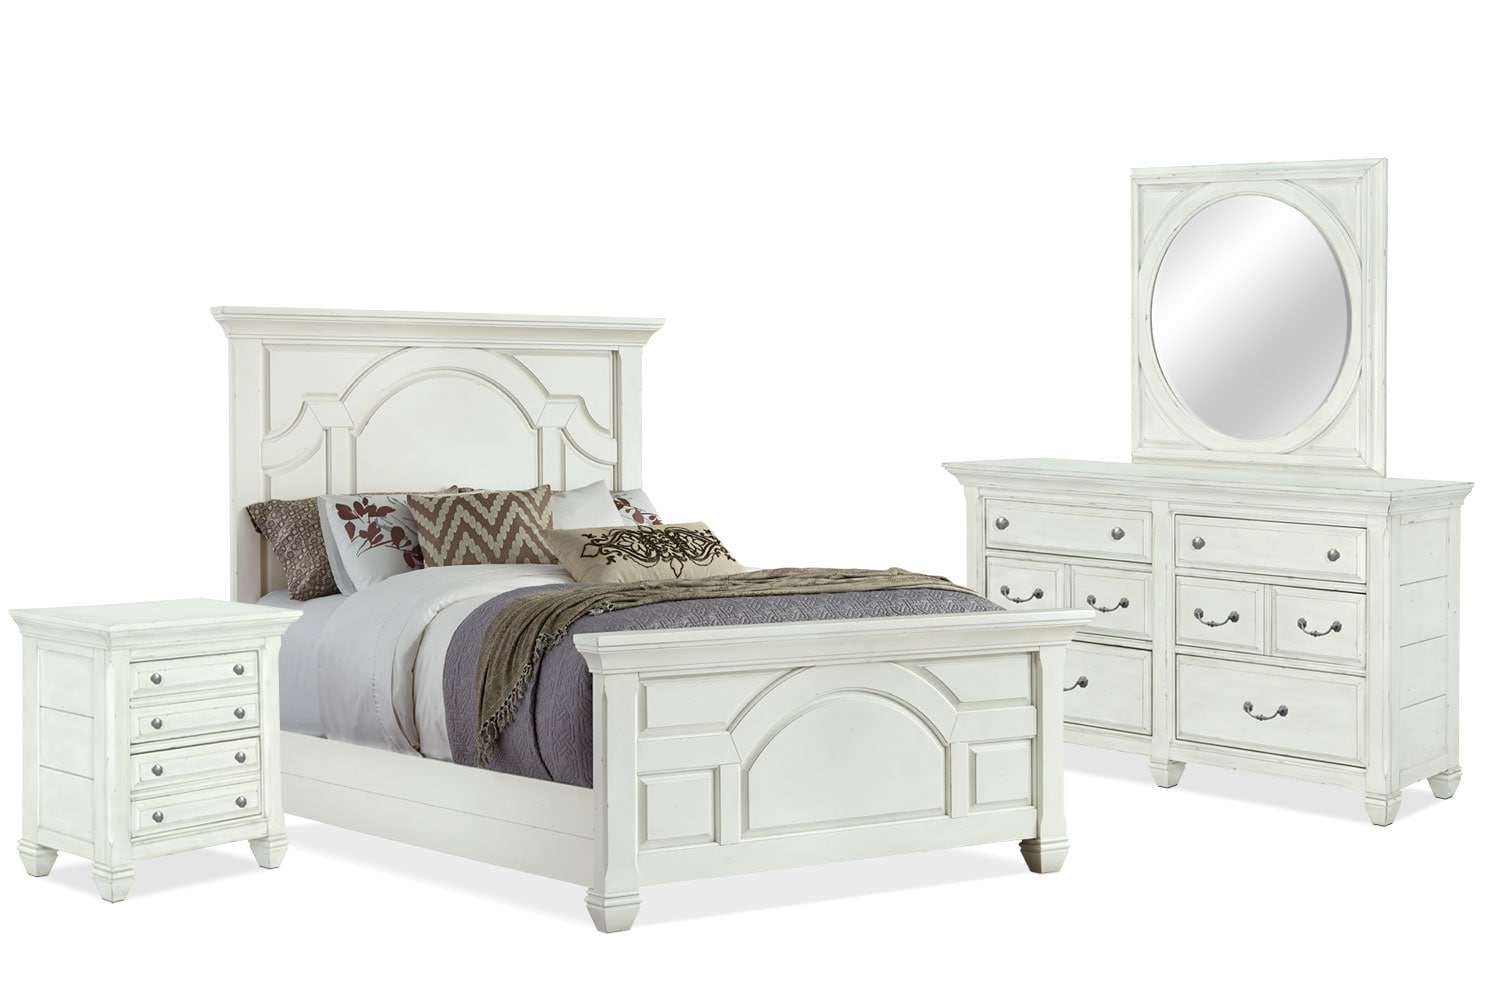 Hancock park 6 piece king bedroom package the brick for Bedroom furniture packages